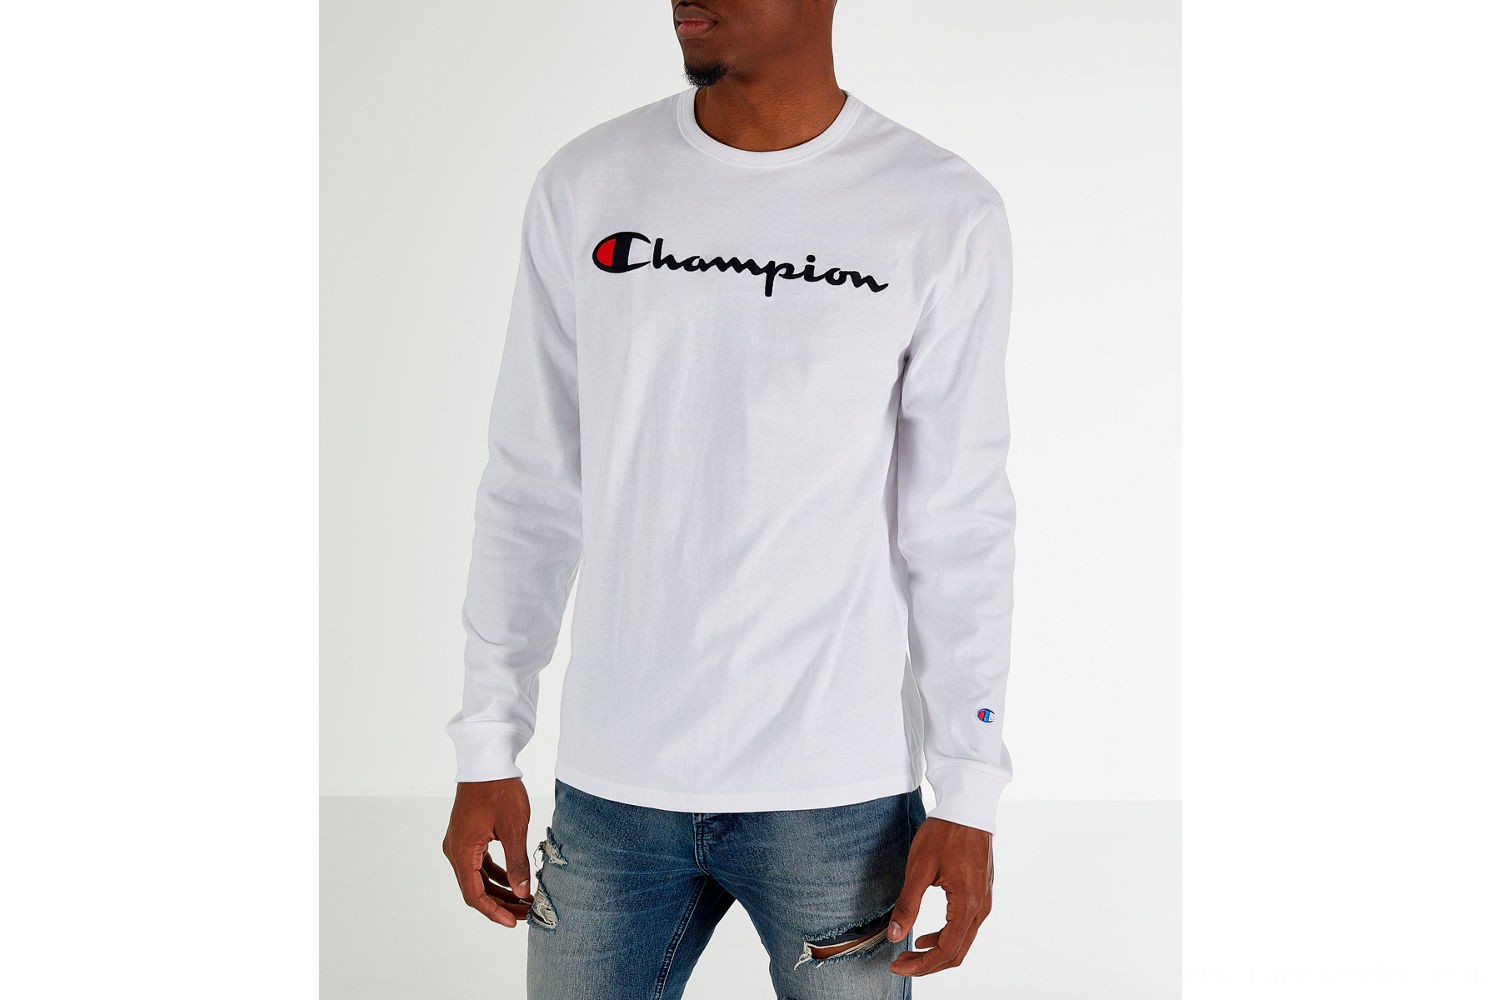 Champion Men's Heritage Logo Long Sleeve T-Shirt - White